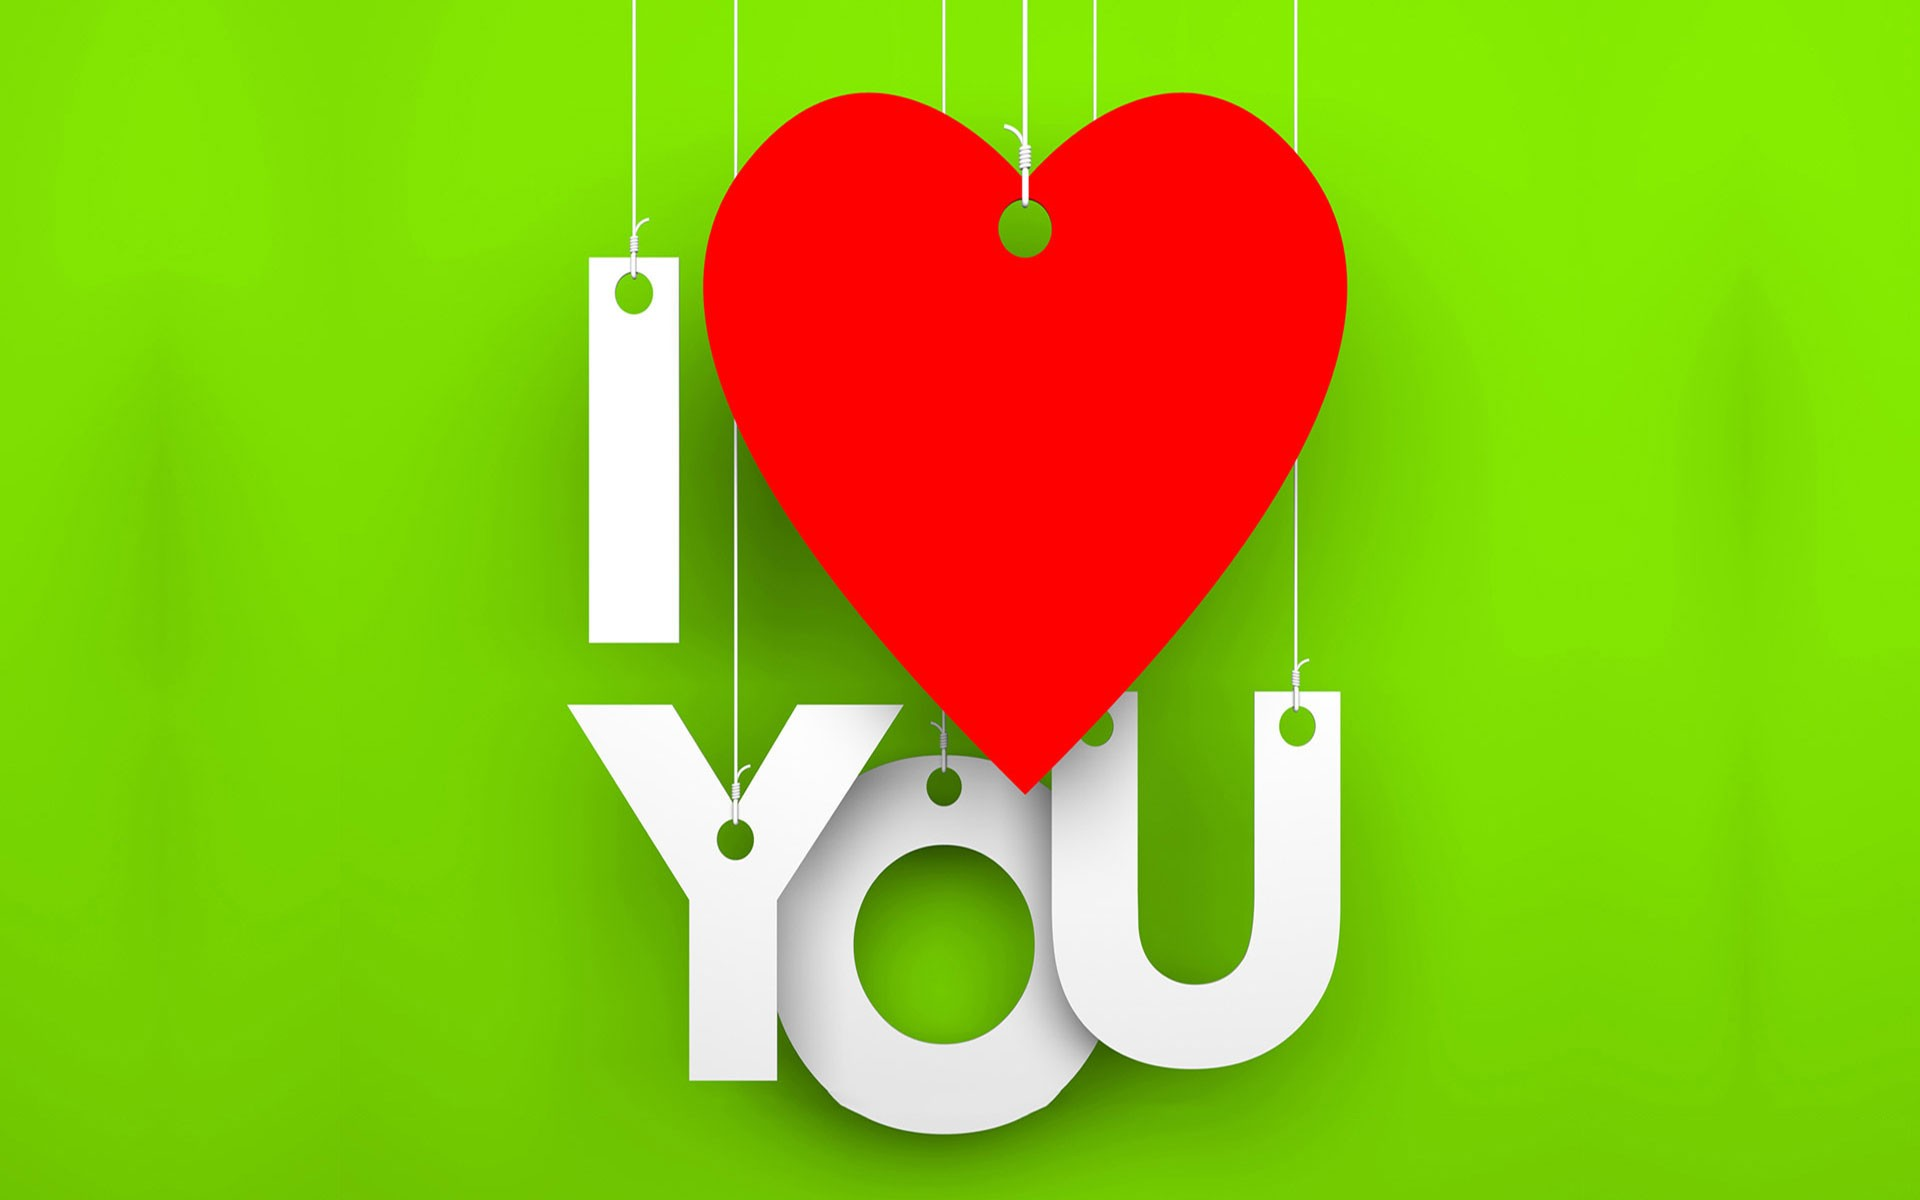 69+ love wallpapers ·① download free awesome backgrounds for